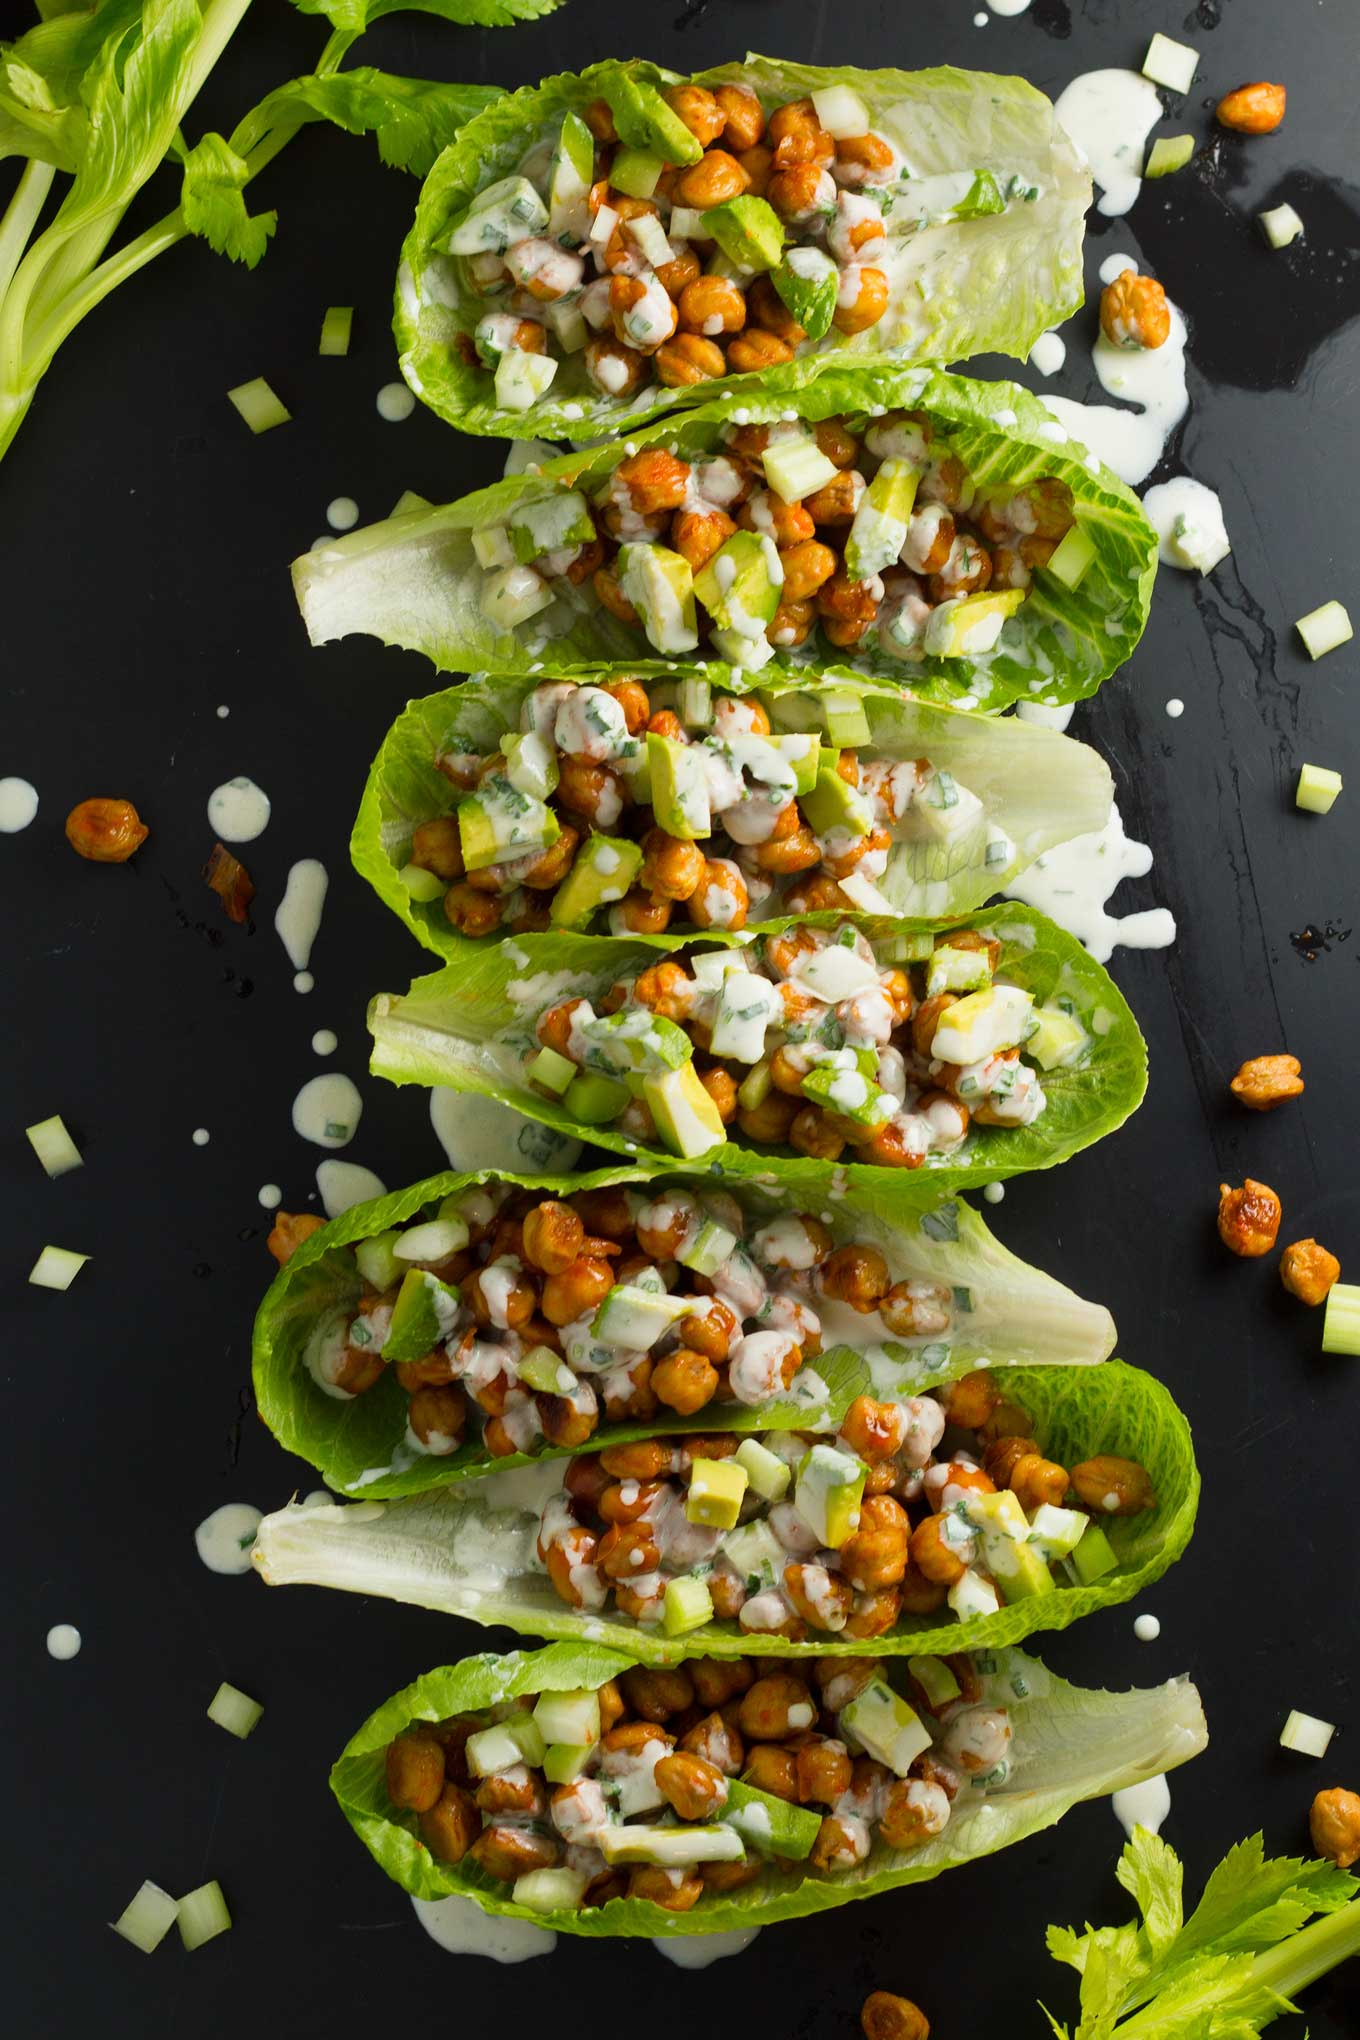 Buffalo Chickpea Lettuce Wraps | Roasted chickpeas are tossed with a spicy buffalo sauce and layered into a lettuce wrap, then topped with crunch celery and creamy avocado! Drizzle with vegan ranch dressing for the perfect lunch or light dinner! | http://eatwithinyourmeans.com